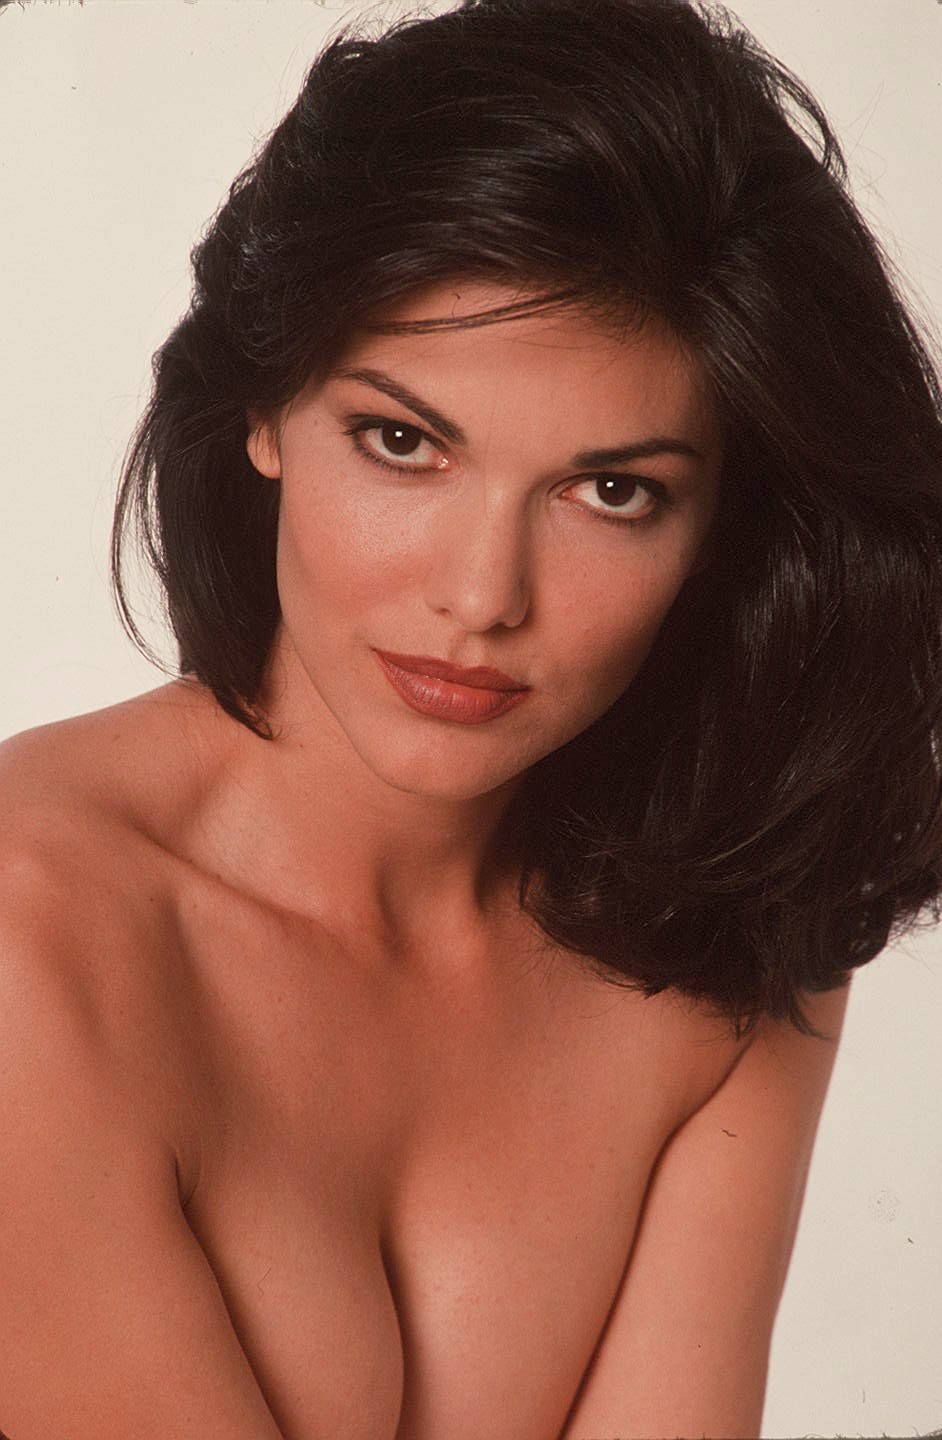 Laura elena harring naked